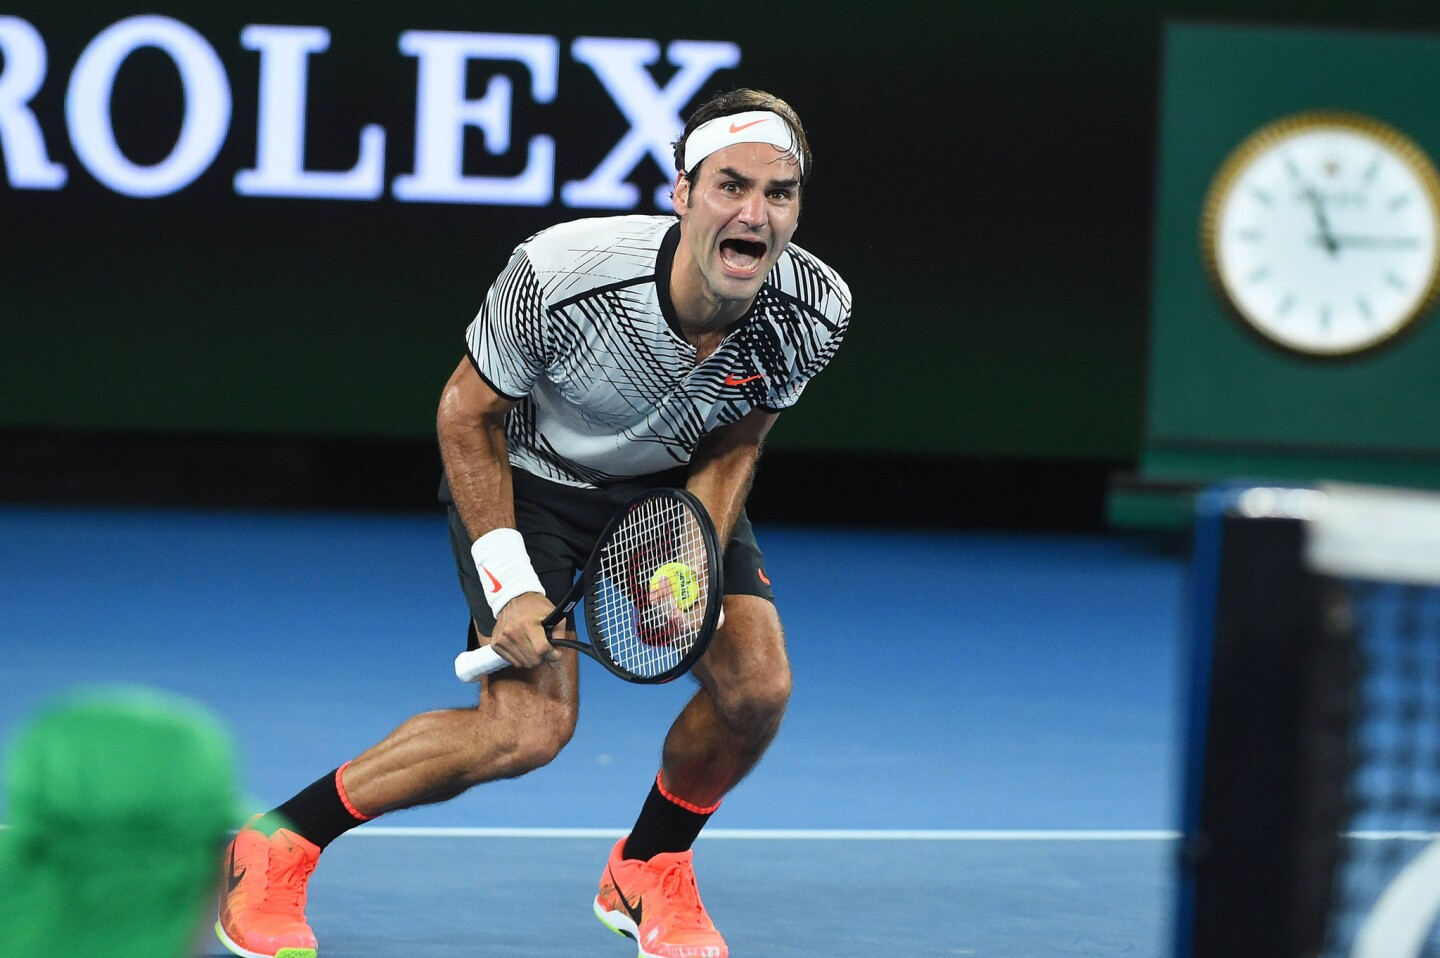 Roger Federer wins his 18th grand slam singles title against Rafael Nadal on Sunday, Jan. 29, 2017 at the 2017 Australian Open at Melbourne Park in Melbourne, Australia. (Corinne Dubreuil/Abaca Press/TNS) ** OUTS - ELSENT, FPG, TCN - OUTS **